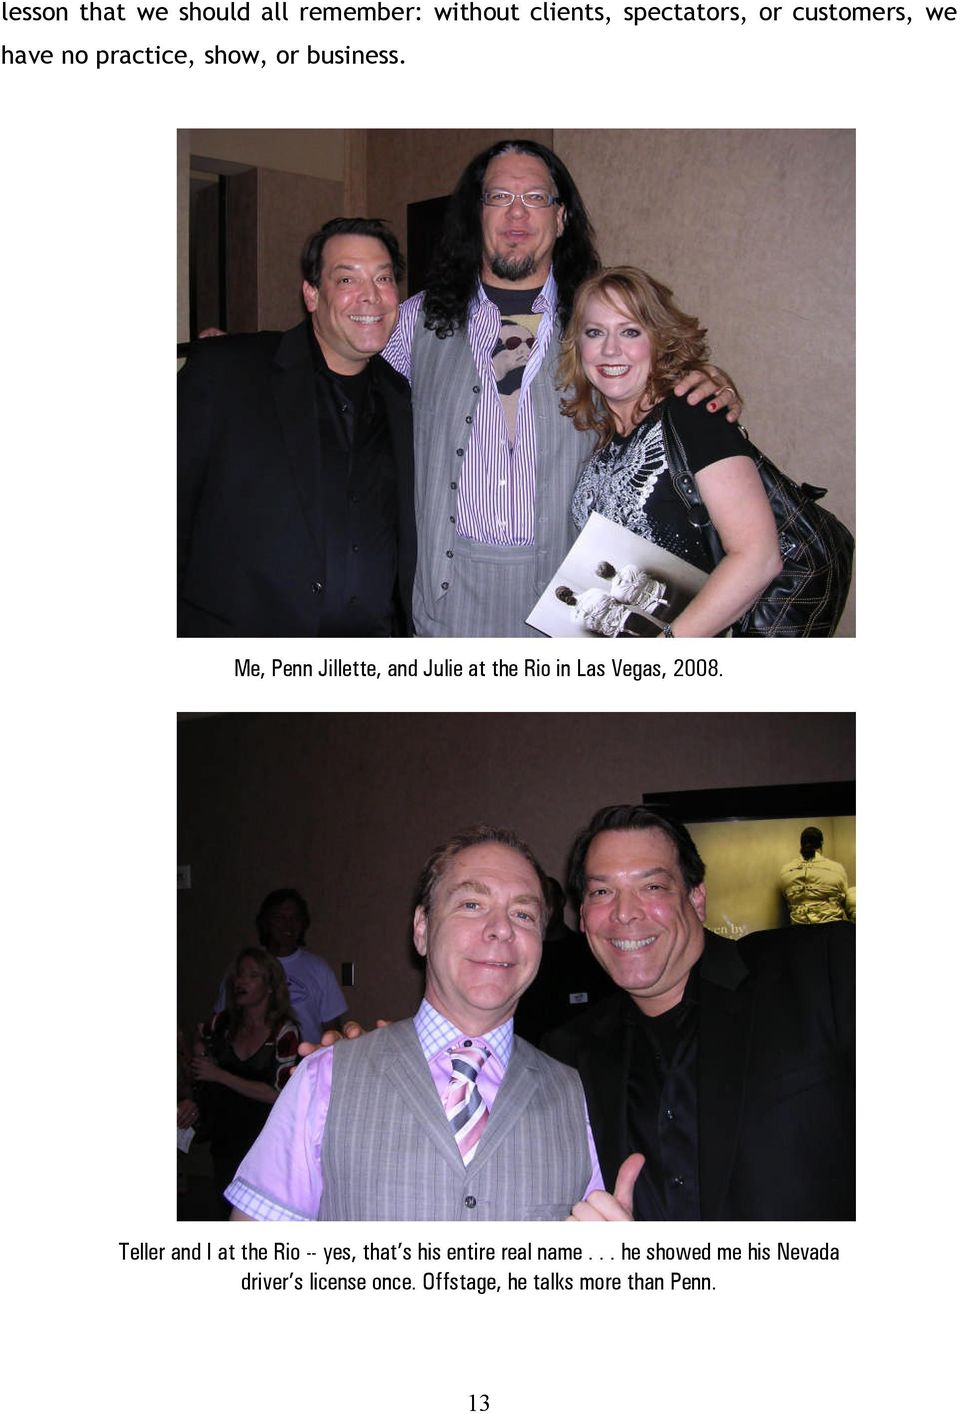 Me, Penn Jillette, and Julie at the Rio in Las Vegas, 2008.